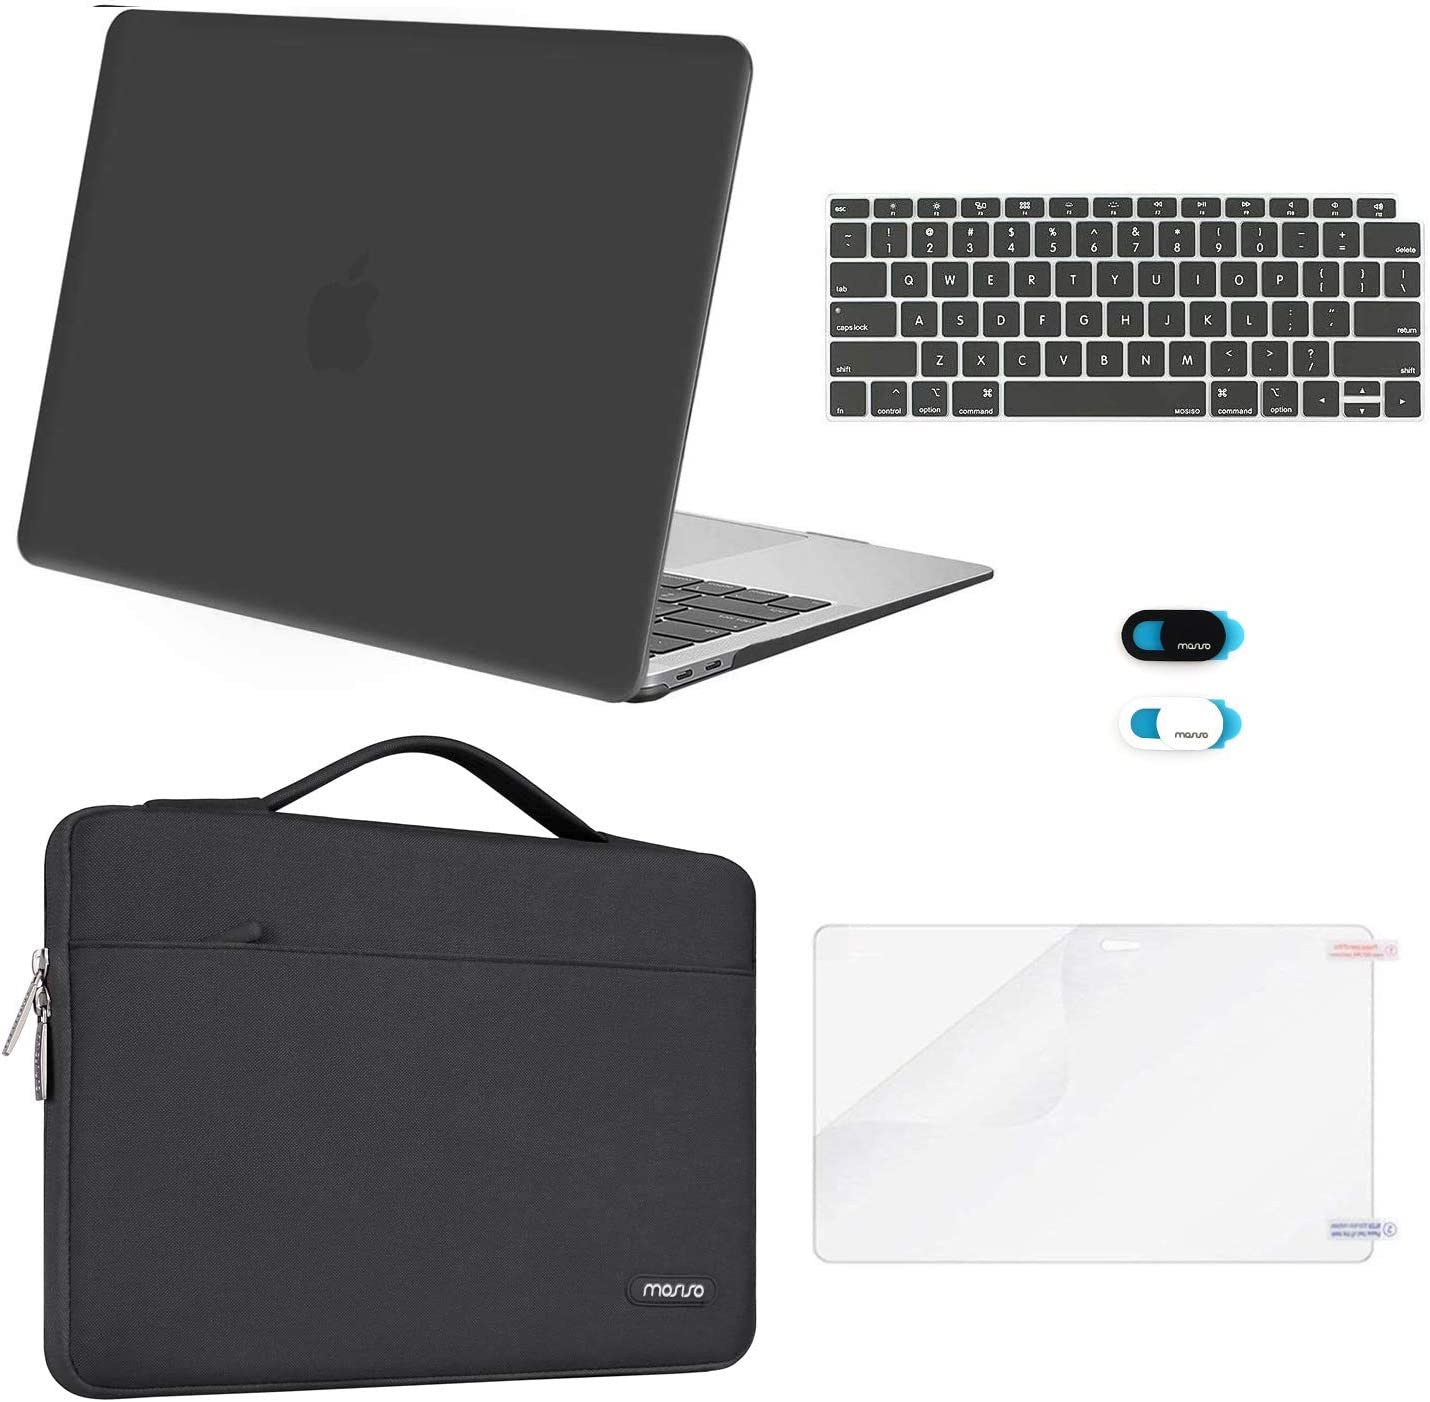 MOSISO MacBook Air 13 inch Case 2020 2019 2018 Release A2179 A1932, Plastic Hard Shell&Sleeve Bag&Keyboard Cover&Webcam Cover&Screen Protector Compatible with MacBook Air 13 inch Retina, Space Gray